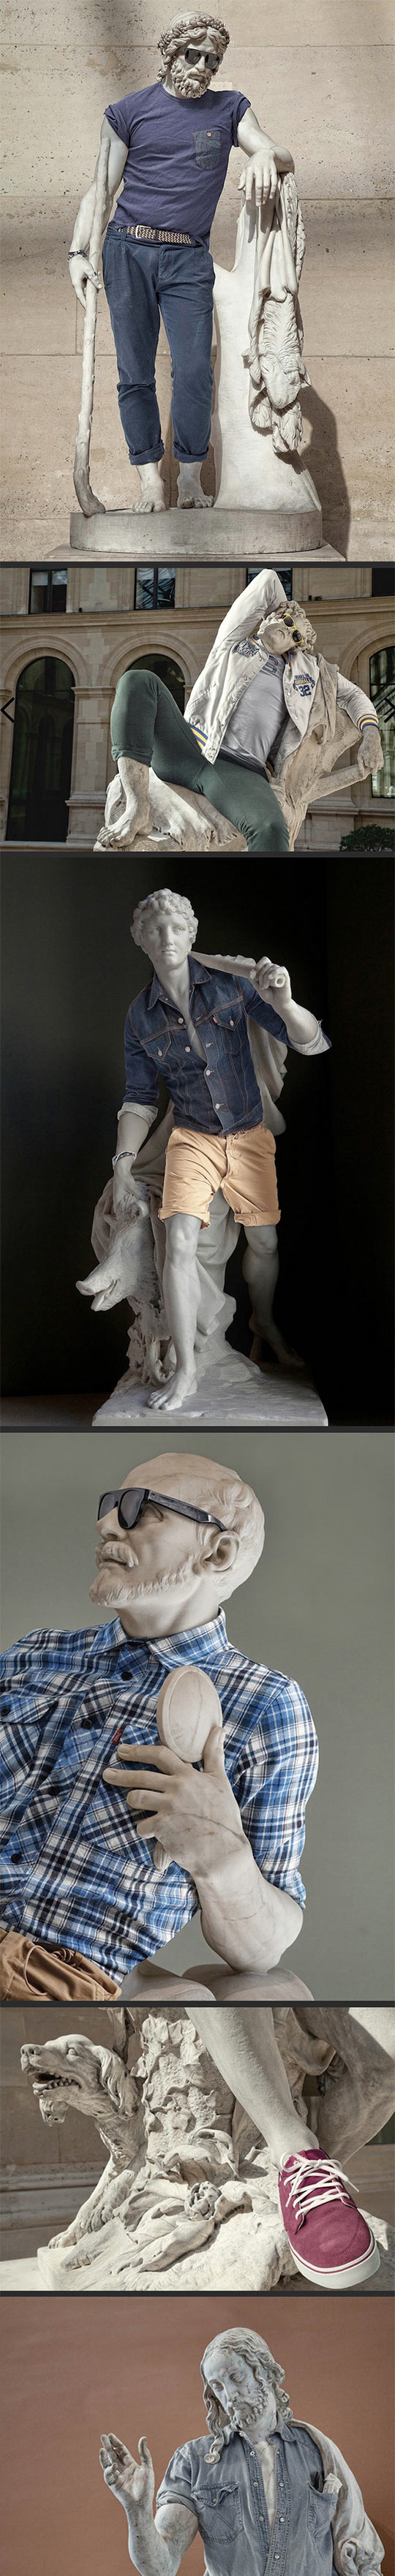 Sculptures in modern day clothes…